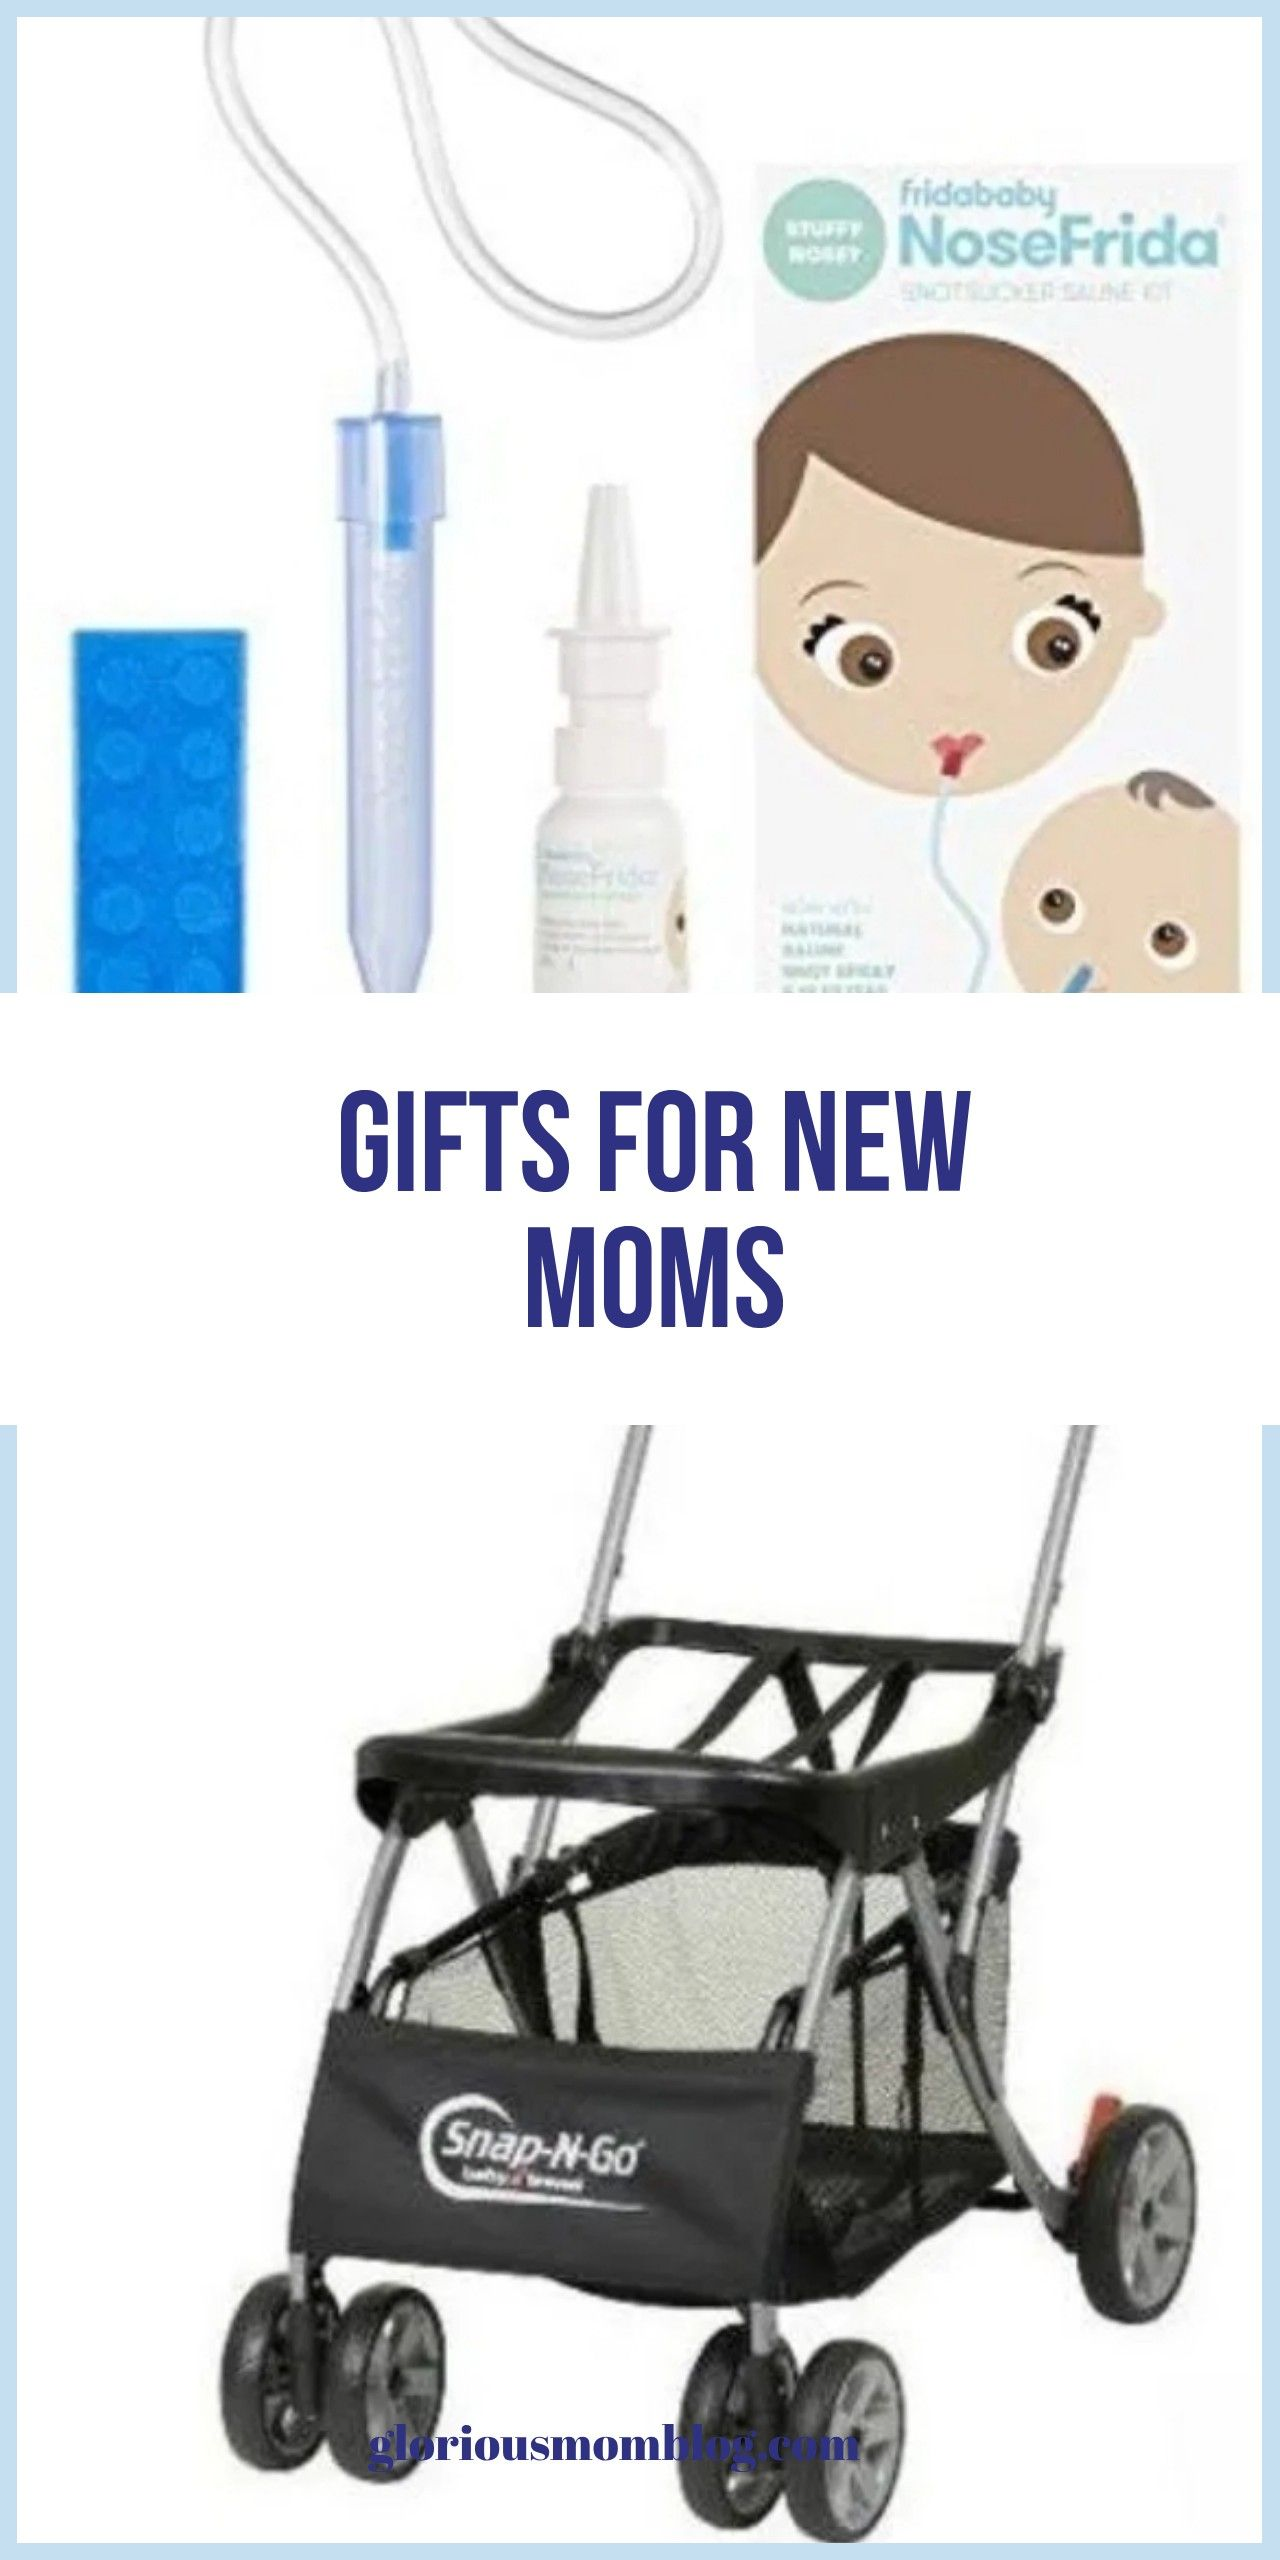 Must have baby products for new moms | Gifts for new moms ...